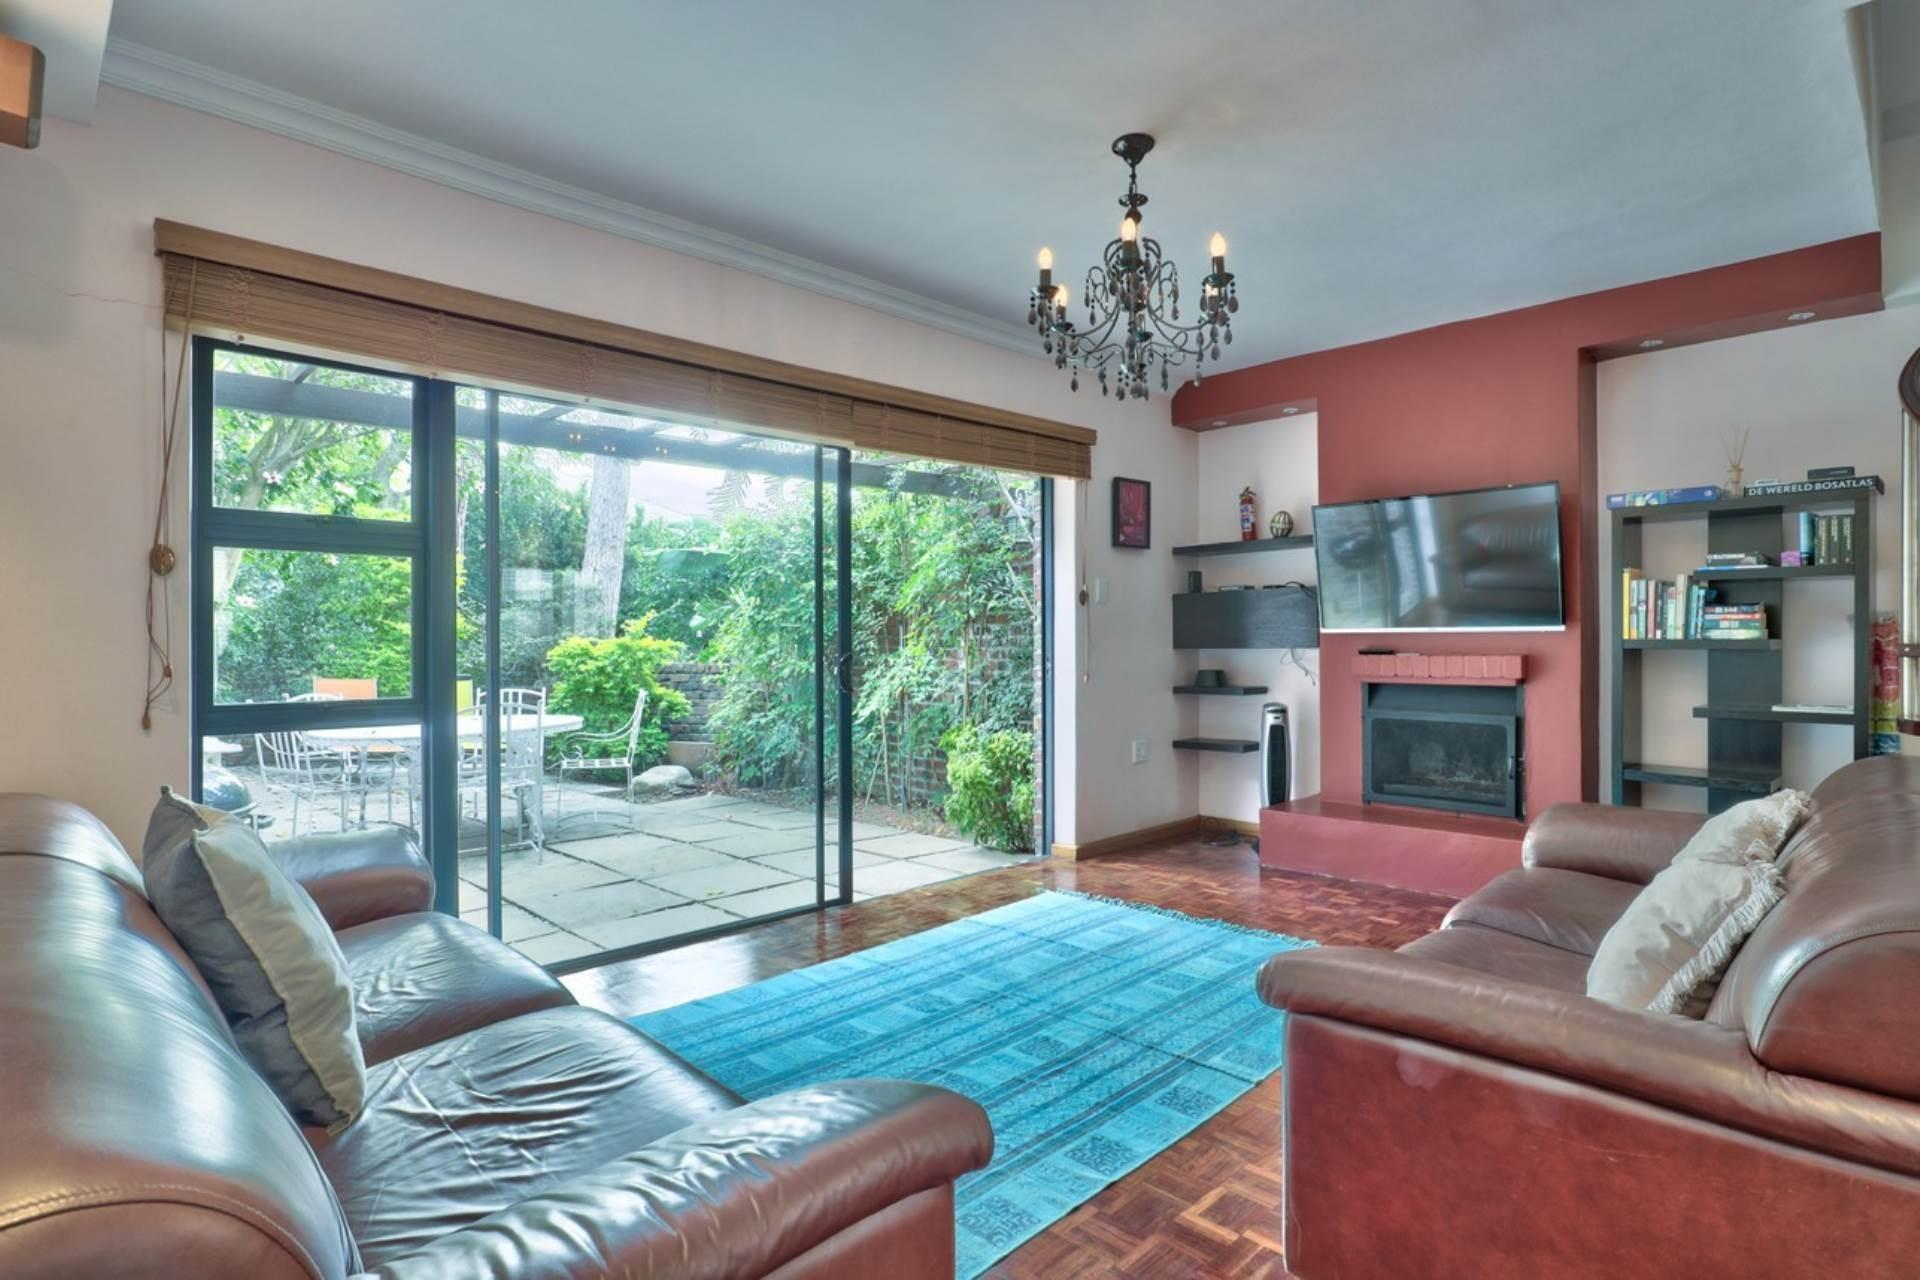 2 Bedroom Town house For Sale in Higgovale